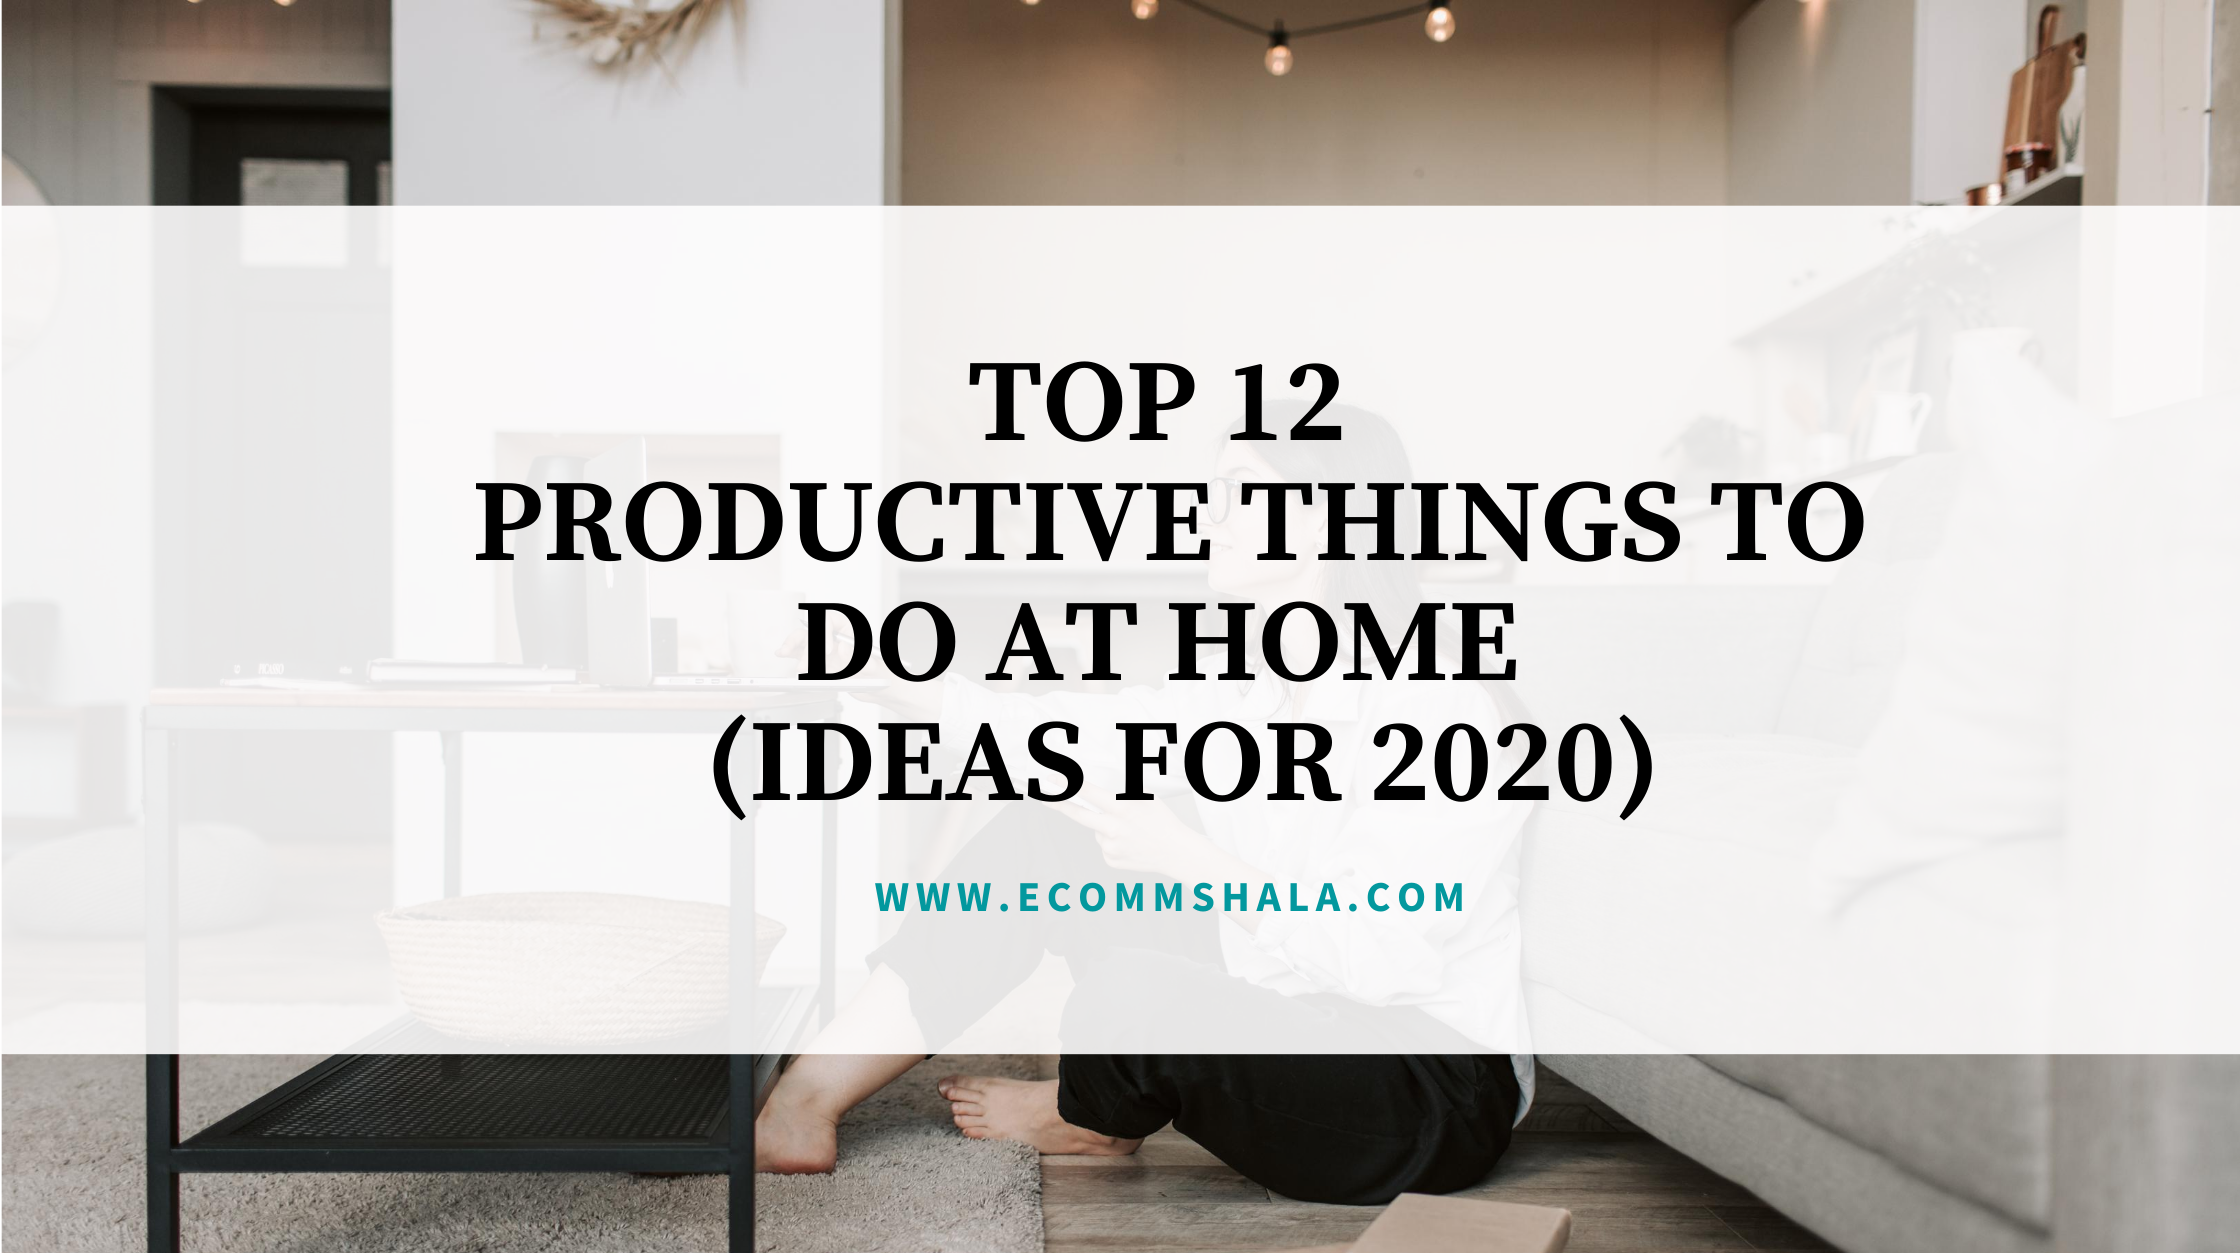 Top 12 Productive Things to Do At Home (Ideas for 2020)